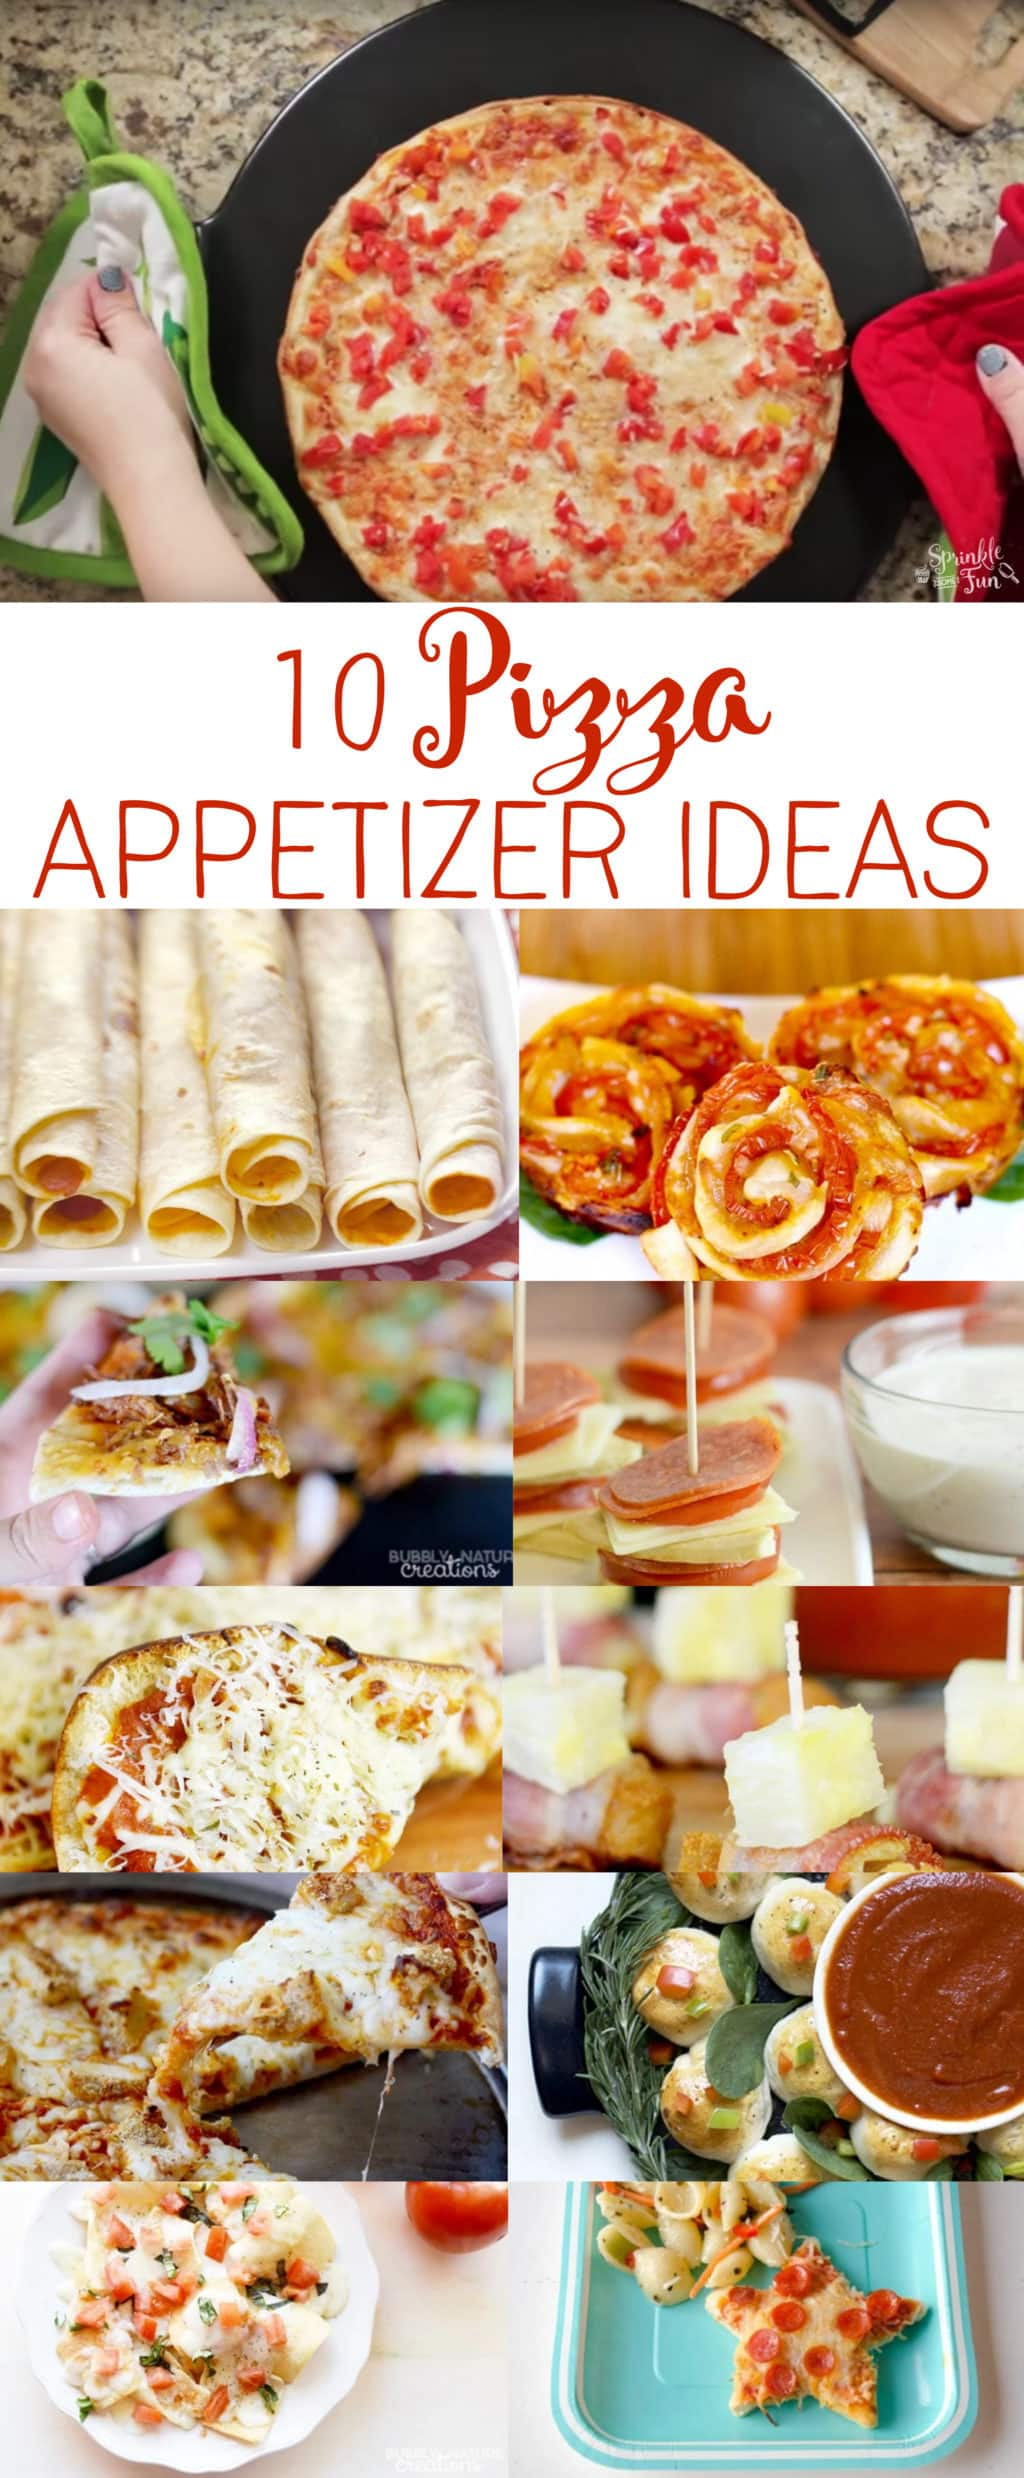 10 Pizza Appetizer Recipes! Easy entertaining ideas using pizza ingredients!